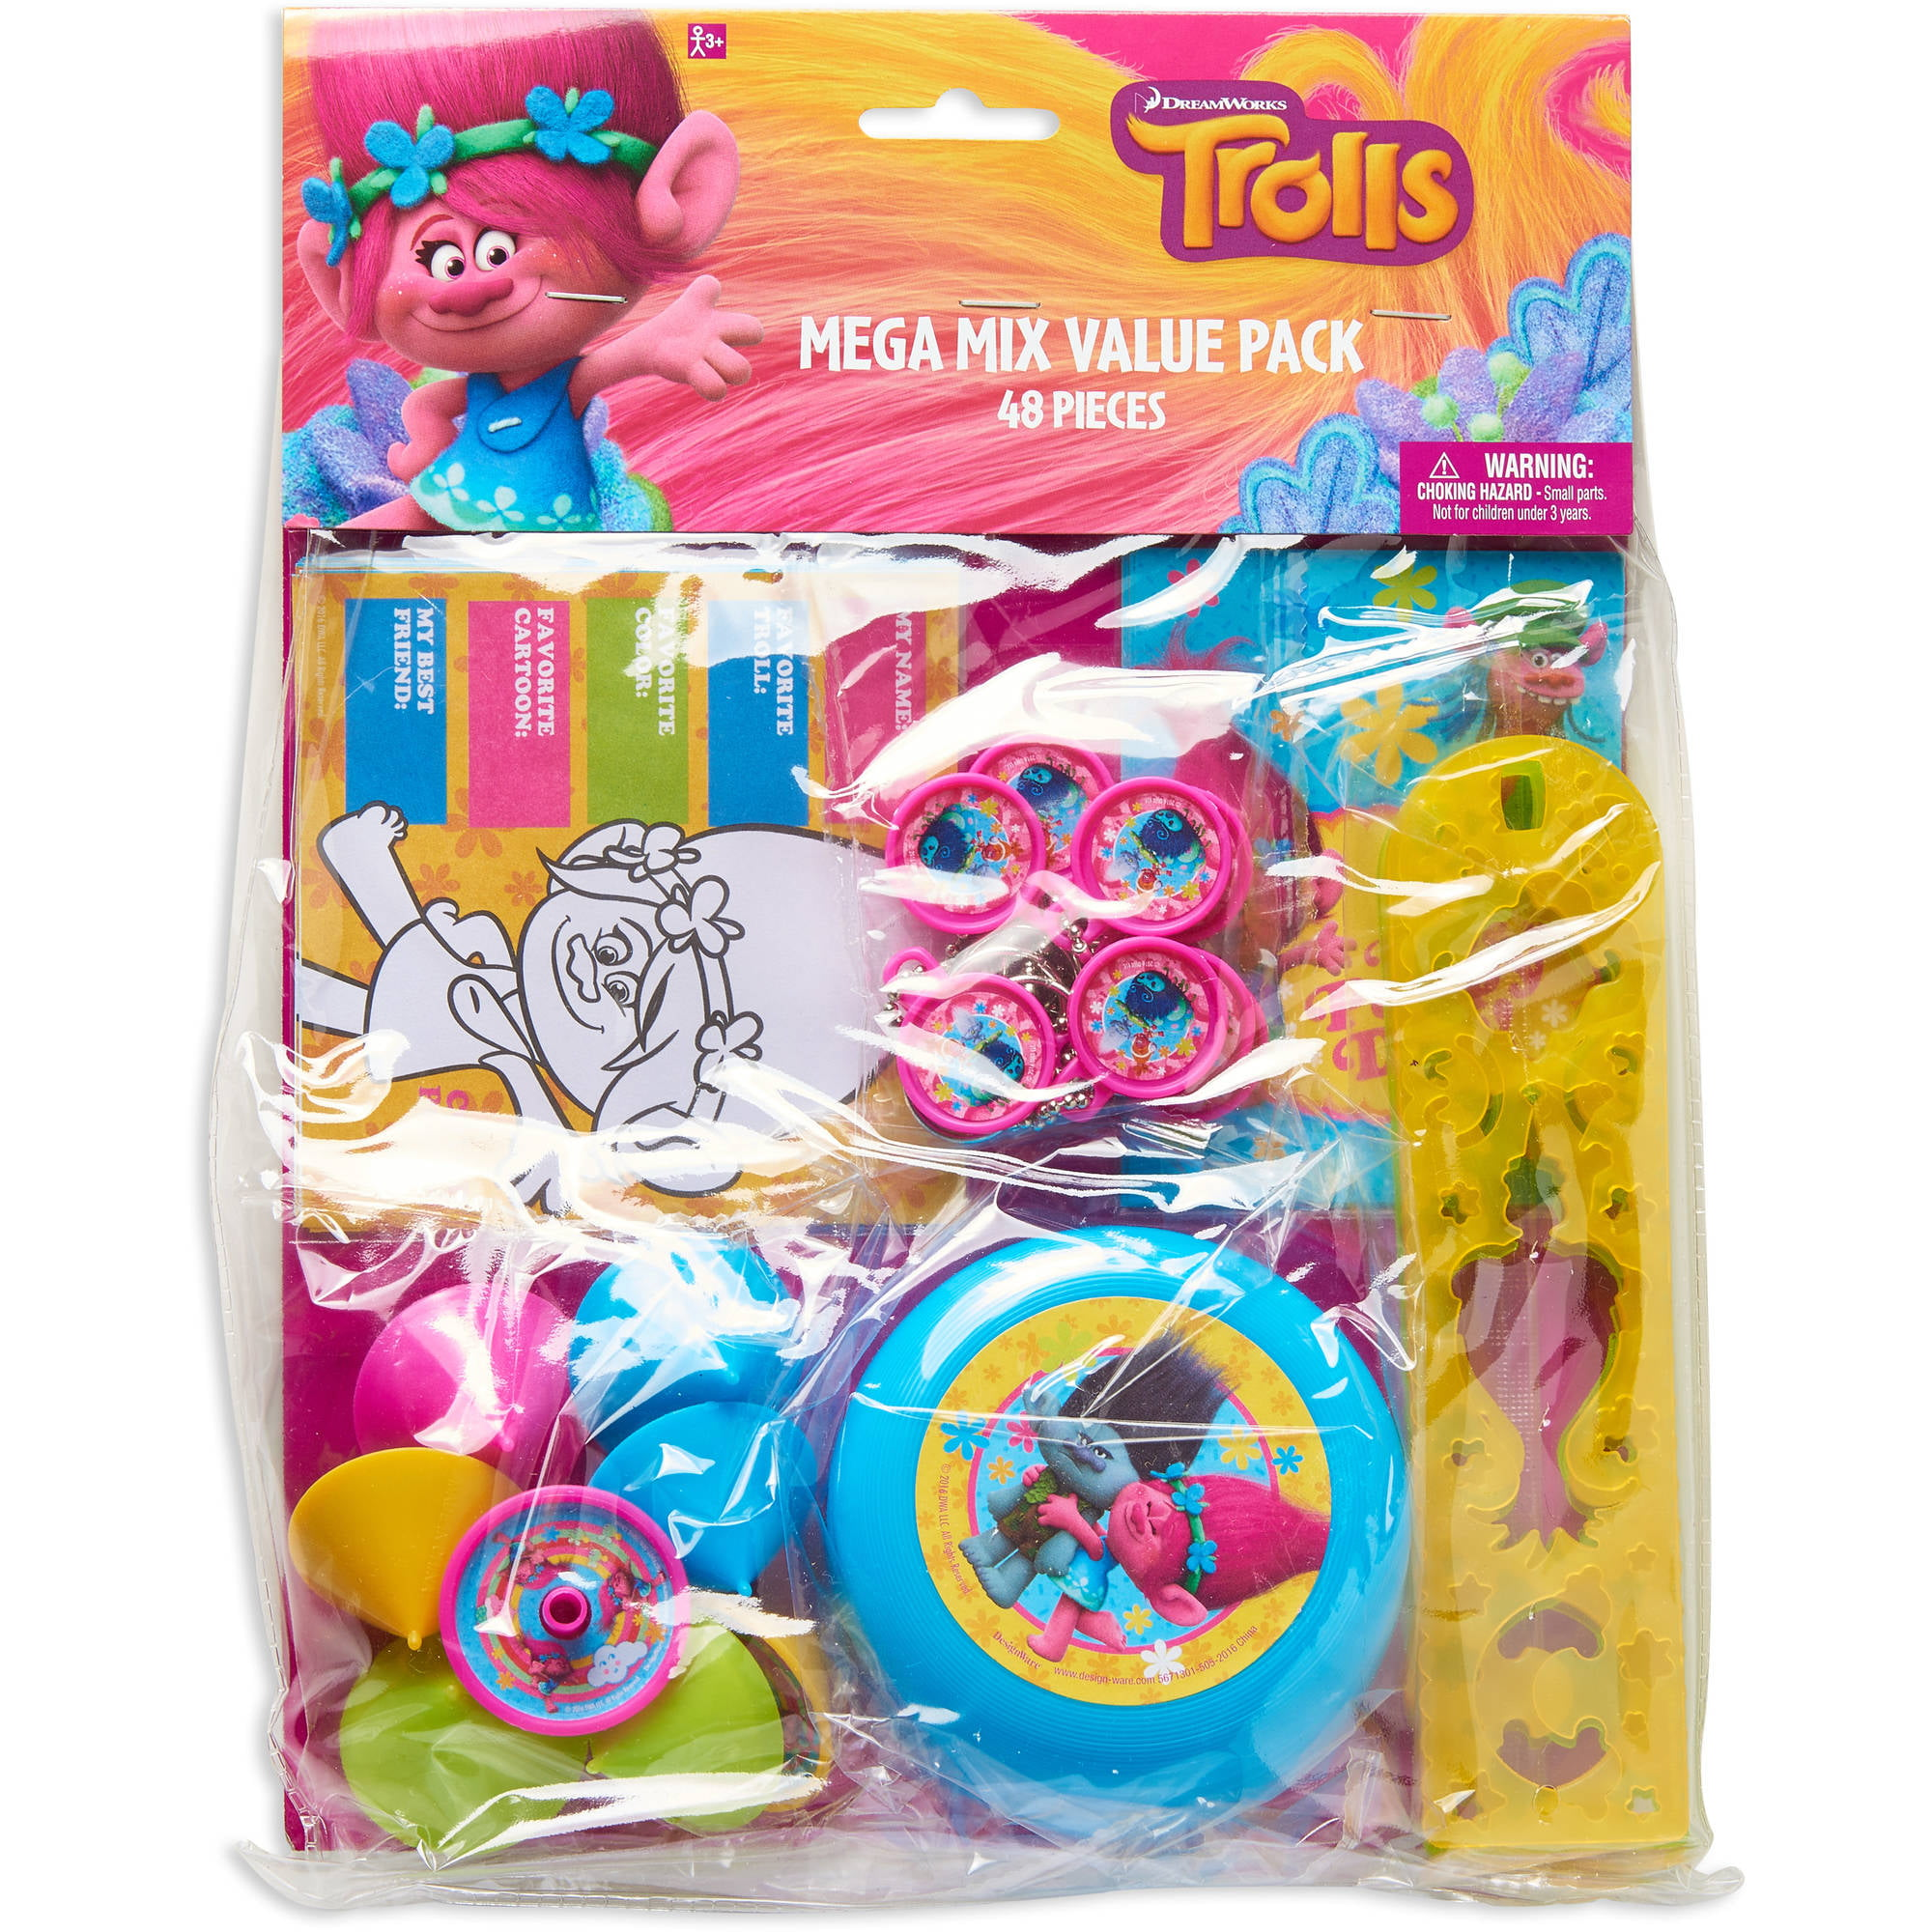 Trolls Party Supplies By American Greetings